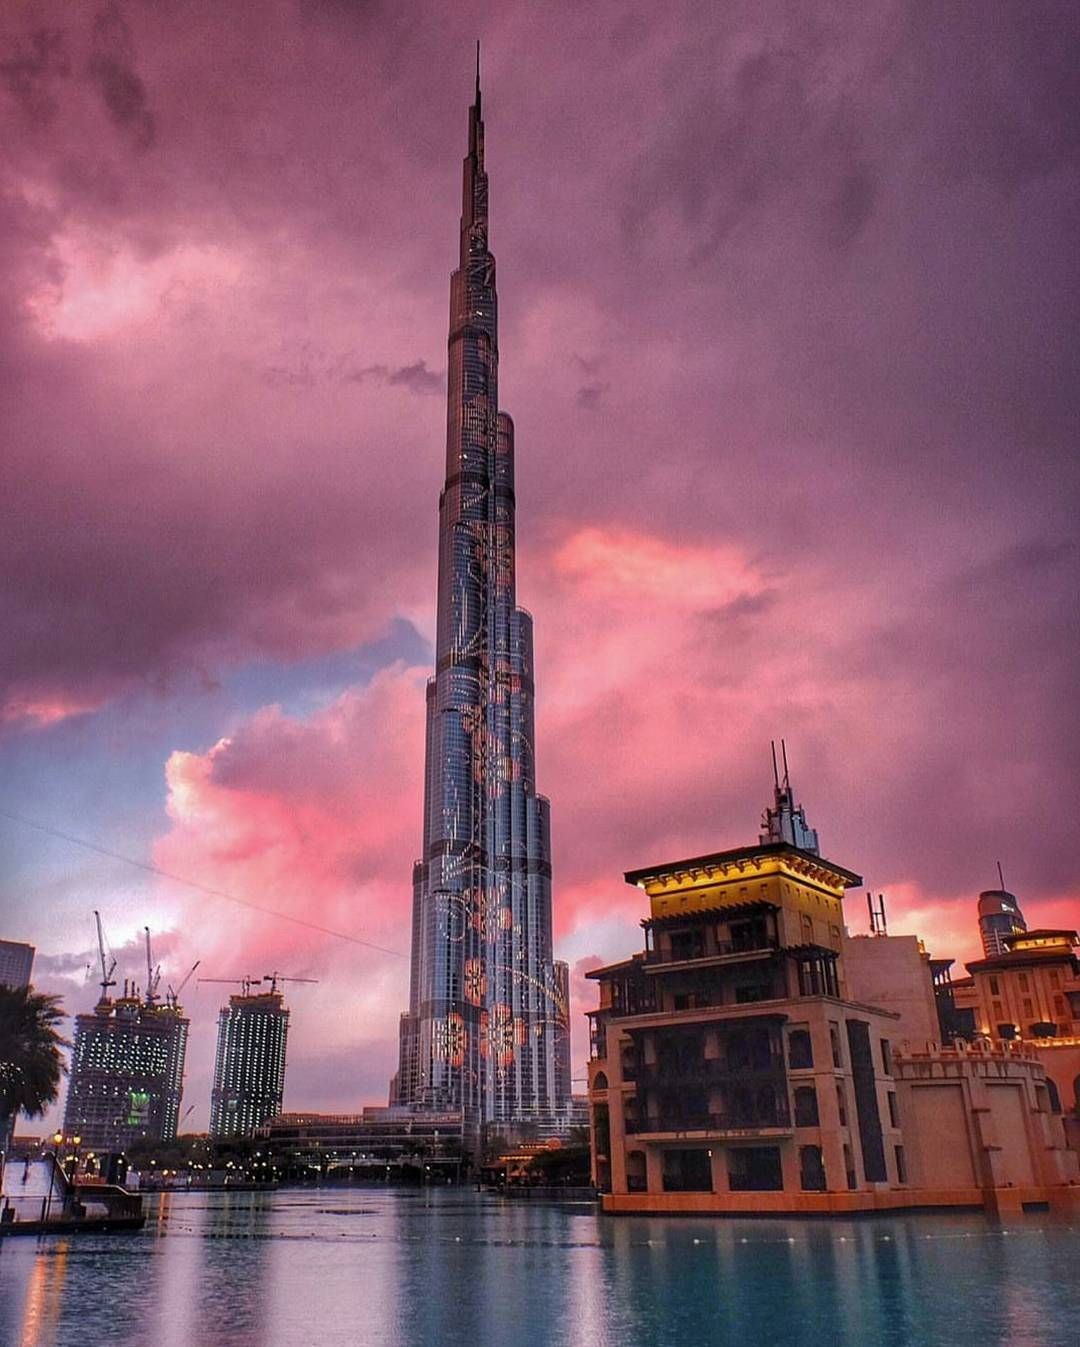 "theworldcamera: ""The beauty of dubai    . .  . . @theworldcamera feature is by @mohammedalmaidoor. . . . .  your photo caught our eyes and we would like to share this beautiful photo with the world  . . .  Thank you for participating with us with the hashtag #theworldcamera . .  For a chance to be featured please tag @theworldcamera and hashtag #theworldcamera    . #instagram #nature #sky #sea #ice #beautiful #earth #unreal #stars  #lightning #instagood  #mountins  #reflection #balloon…"